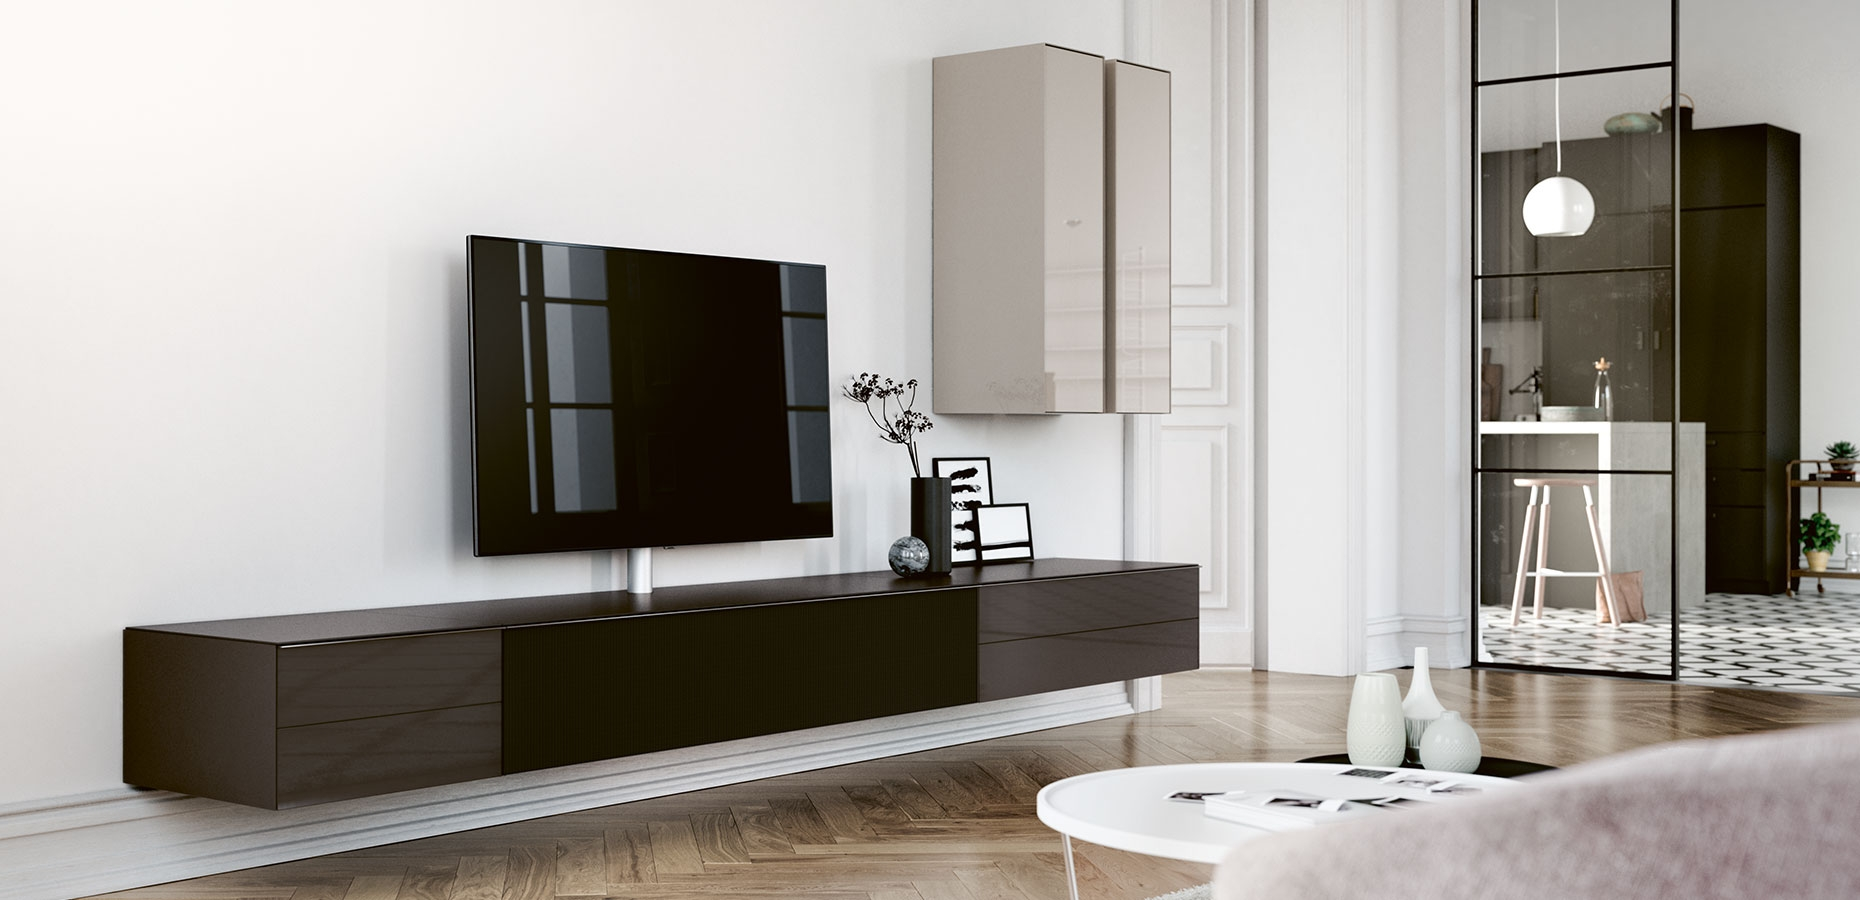 spectral scala spectral audio m bel gmbh. Black Bedroom Furniture Sets. Home Design Ideas